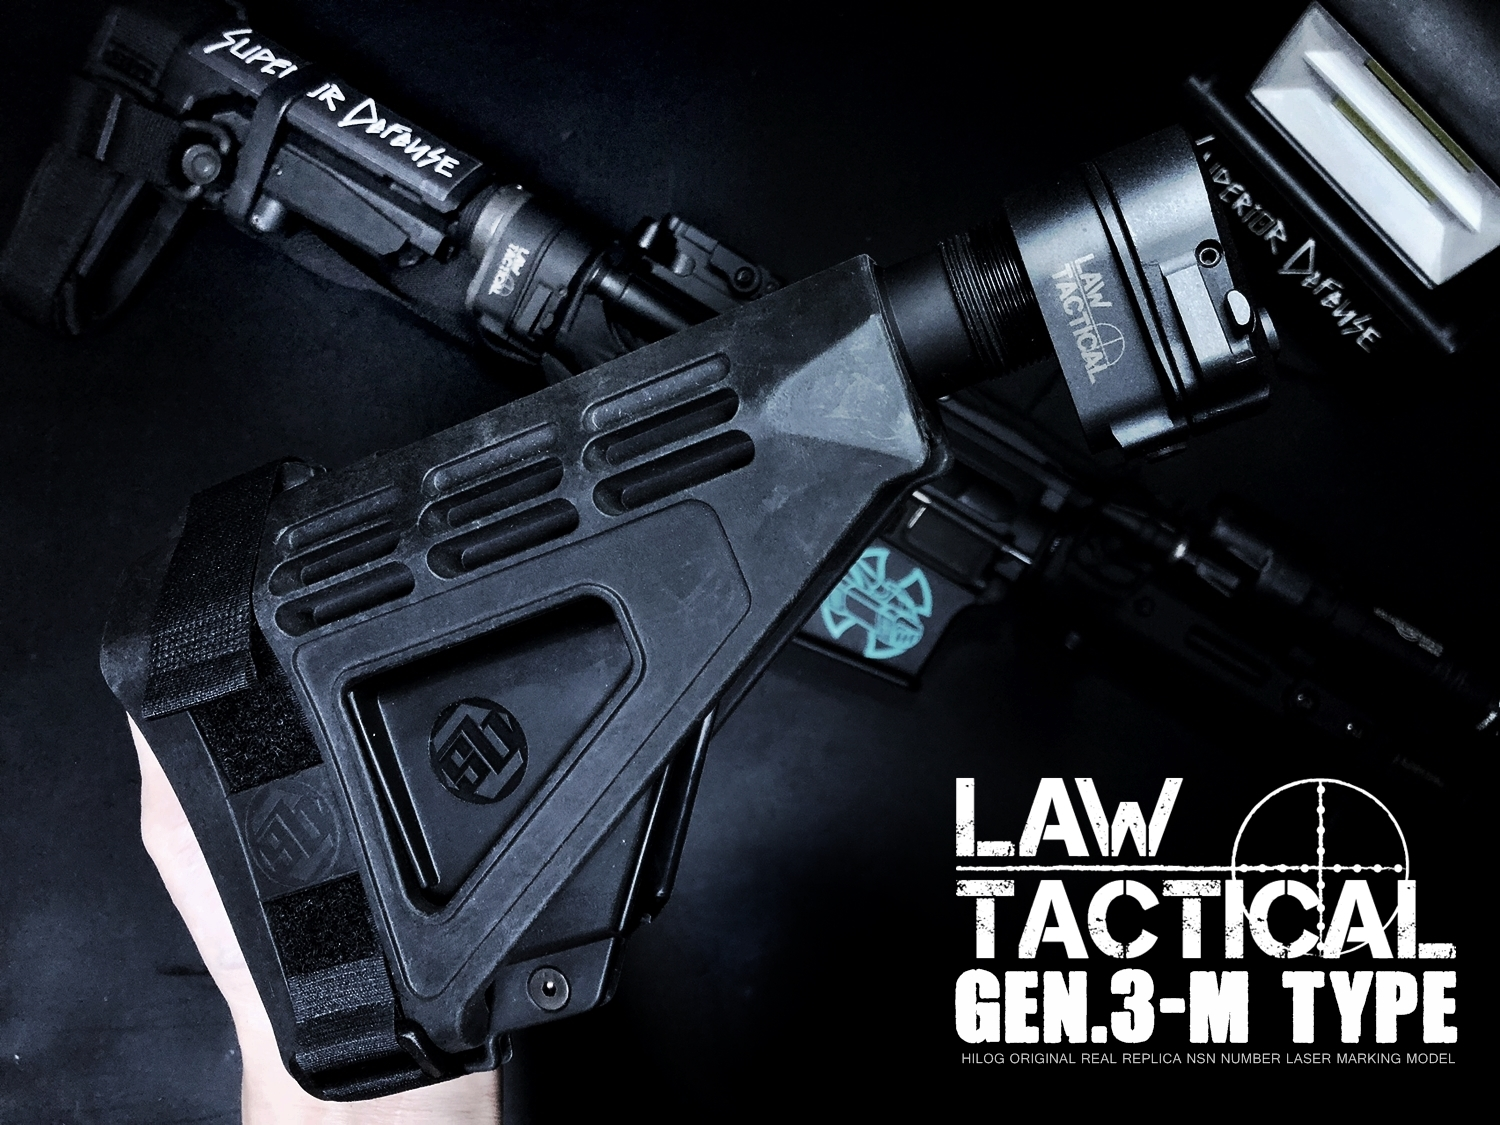 0 LAW TACTICAL GEN 3-M